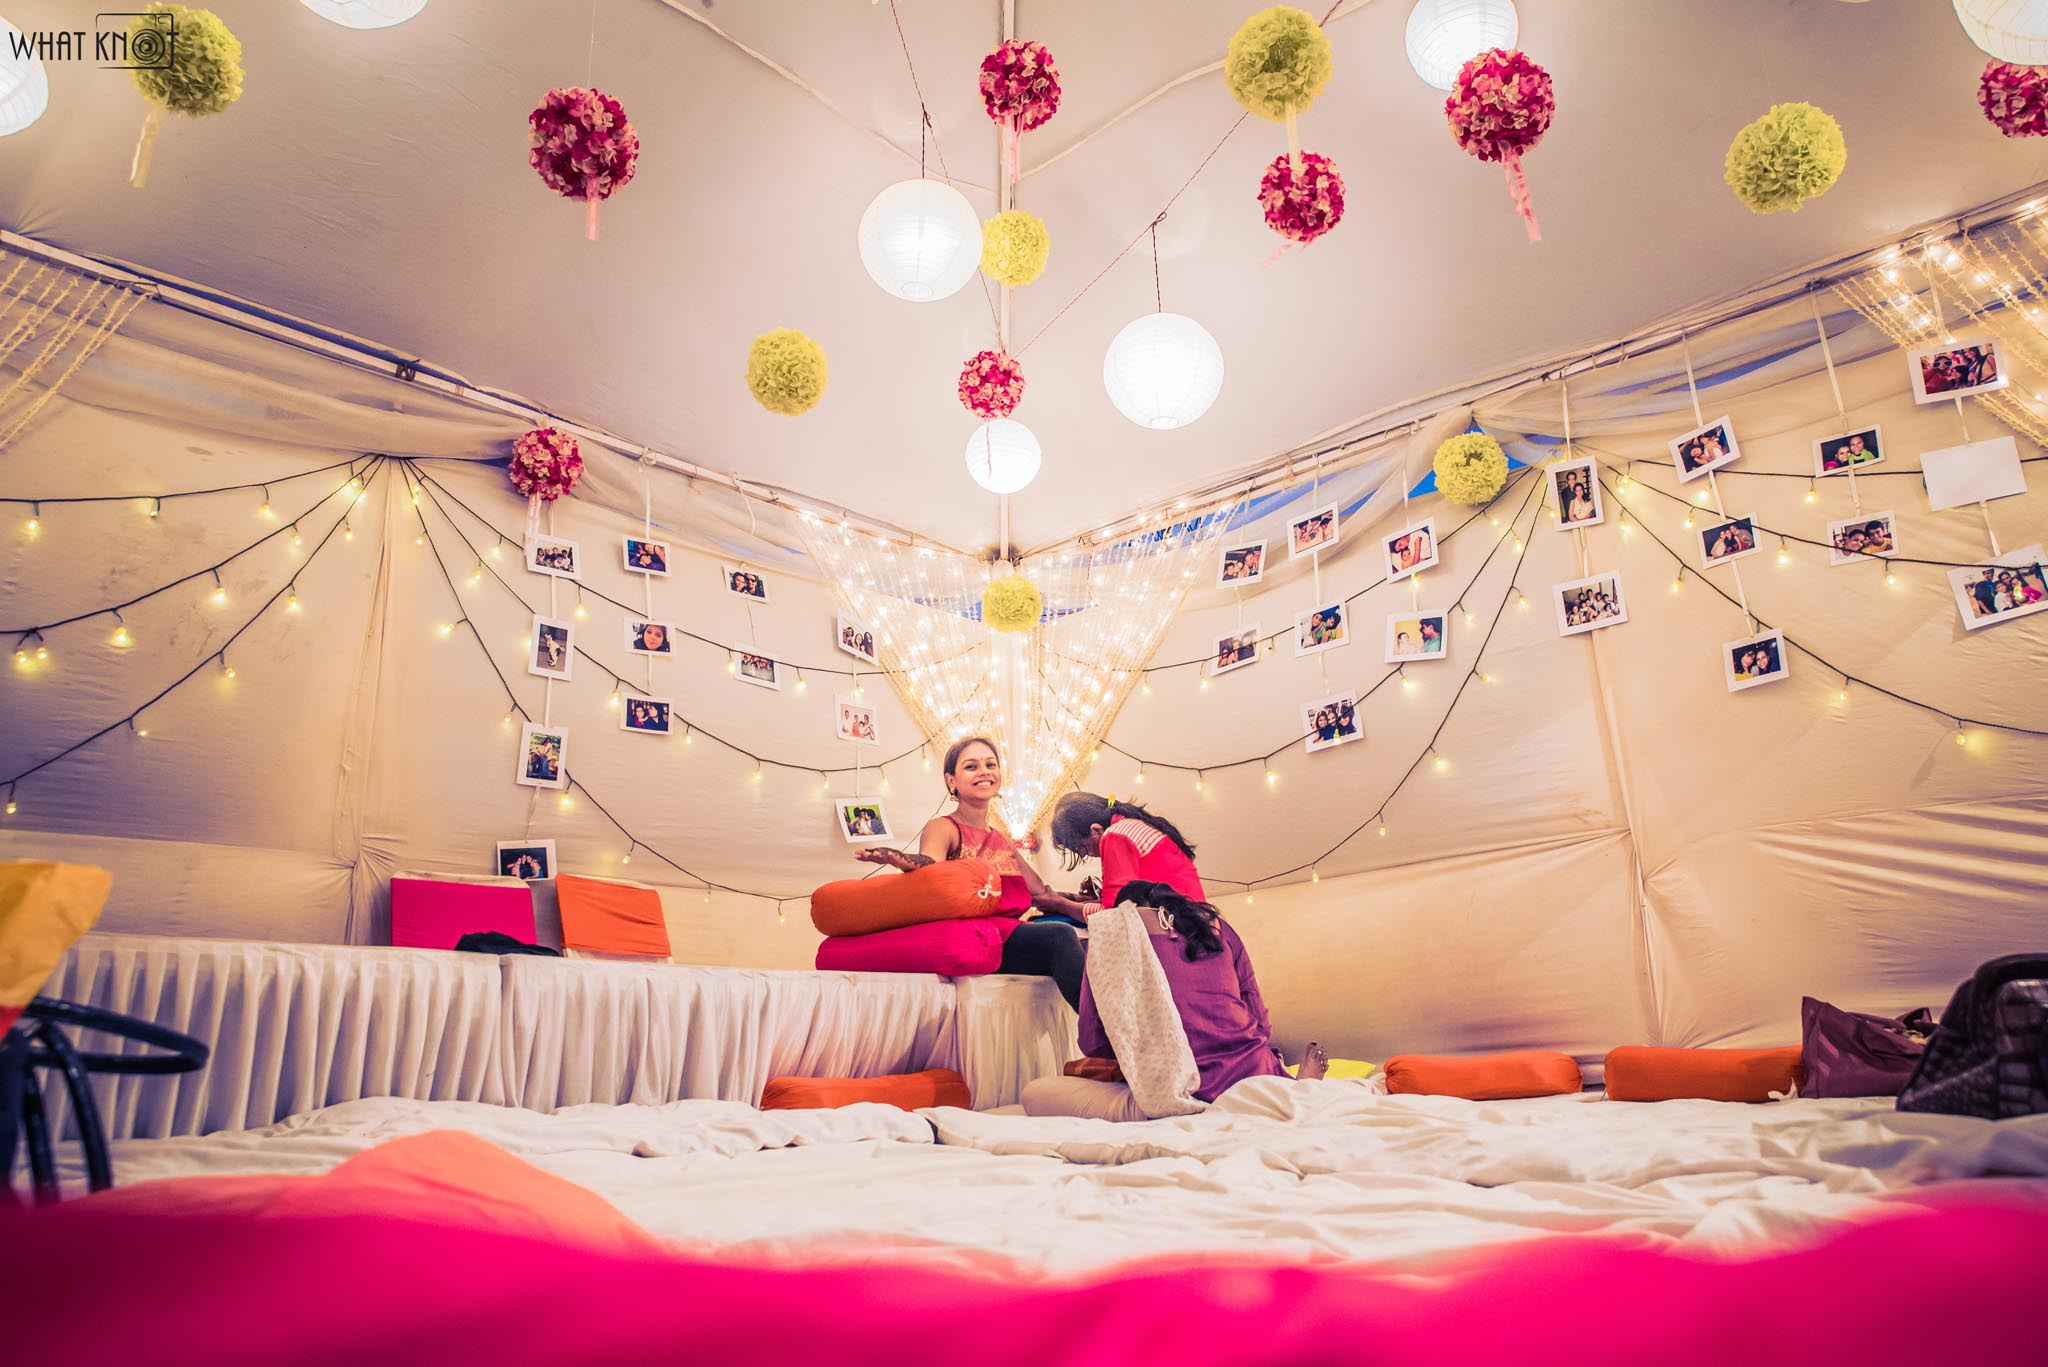 Candid-Wedding-Photography-WhatKnot-Marathi-44